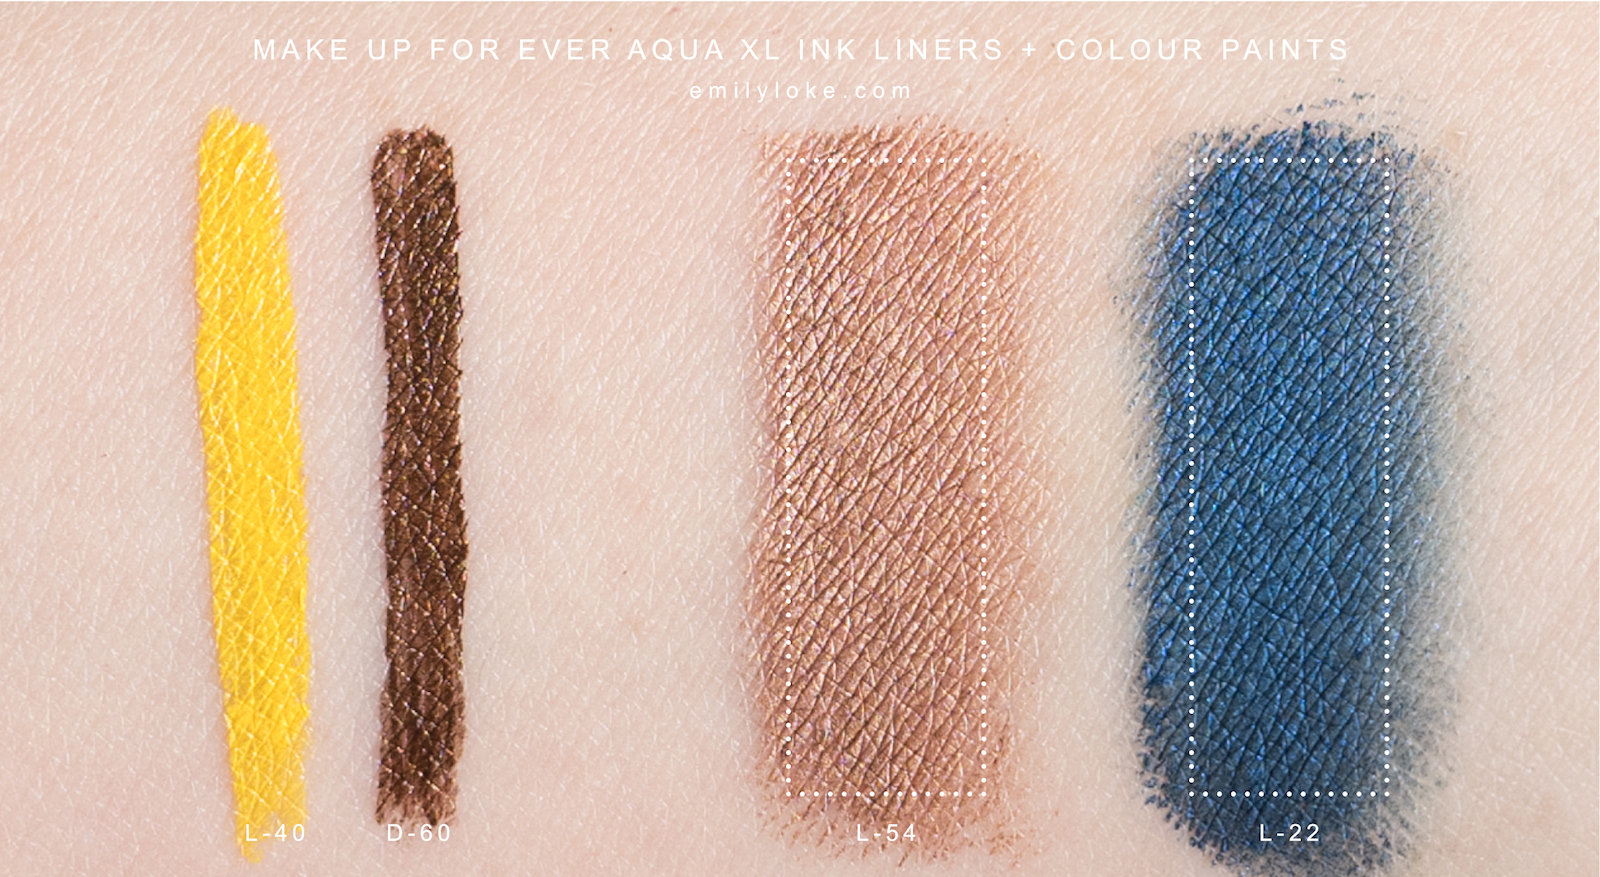 make up for ever aqua xl colour paints and ink liners